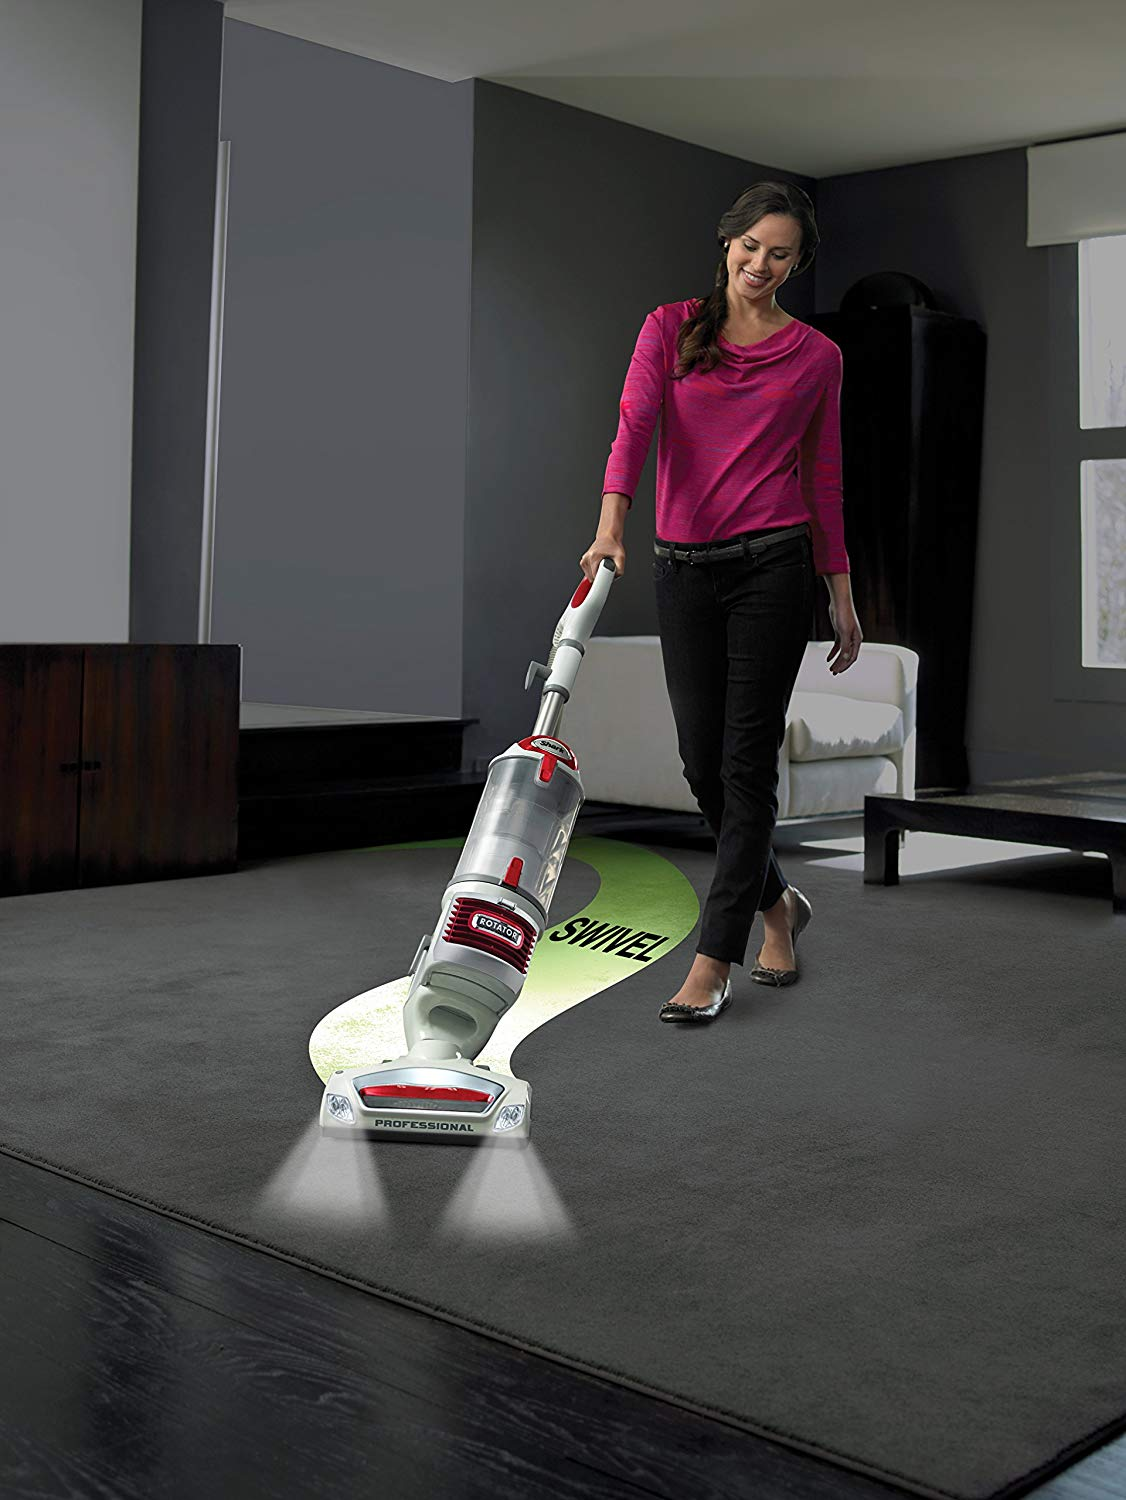 Best HEPA Vacuums For Allergies And Asthma Sufferers